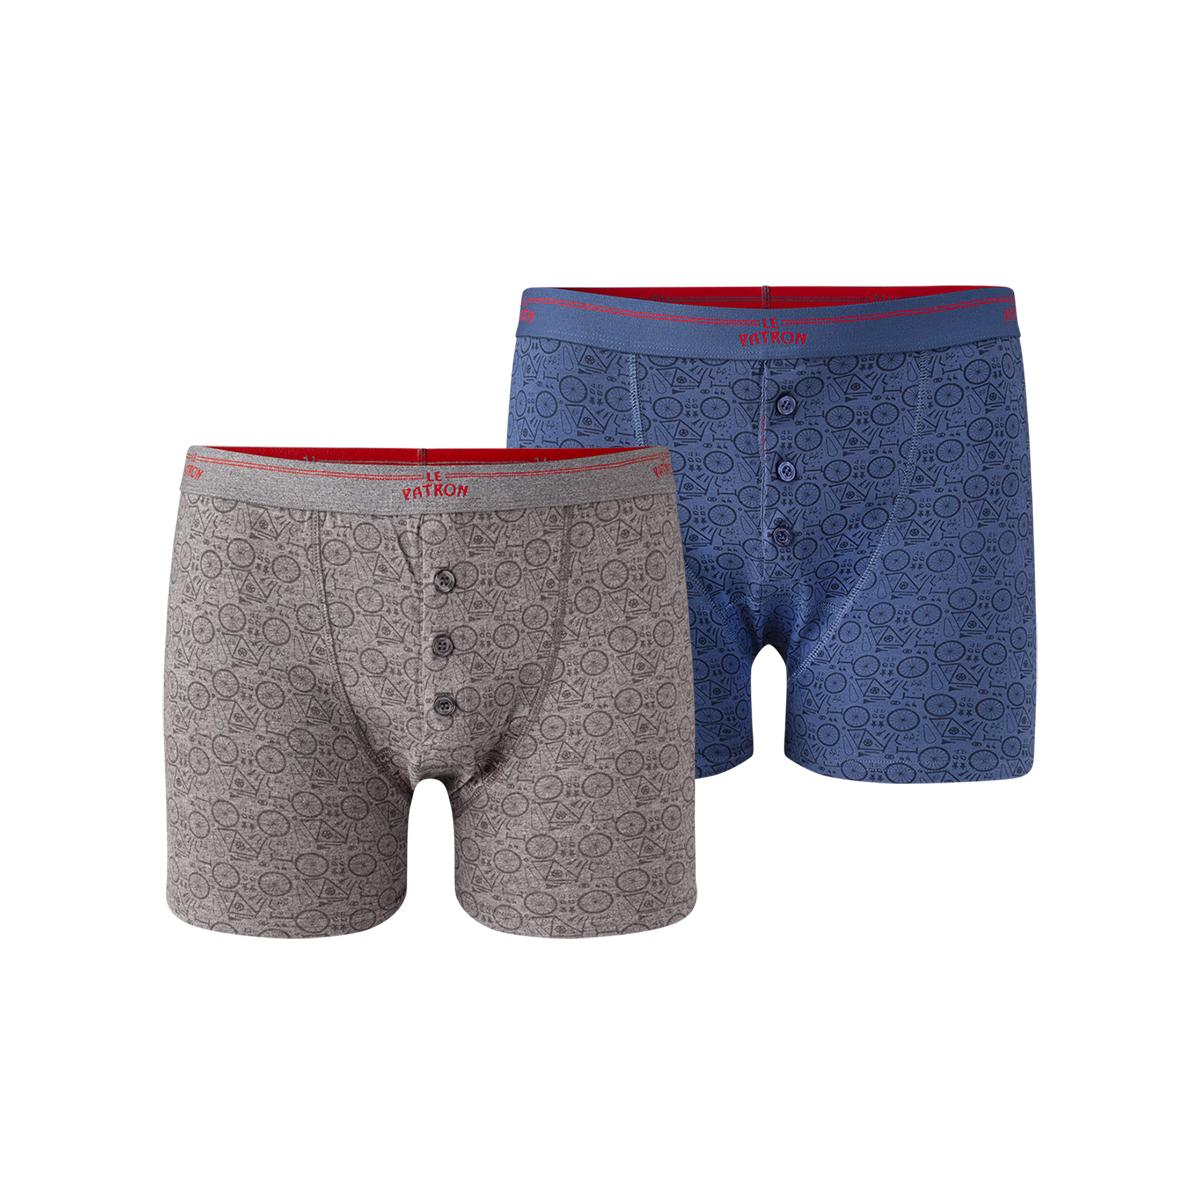 Le Patron underwear Grijs Blauw / Boxers Pieces de bicyclette Blue/Grey S